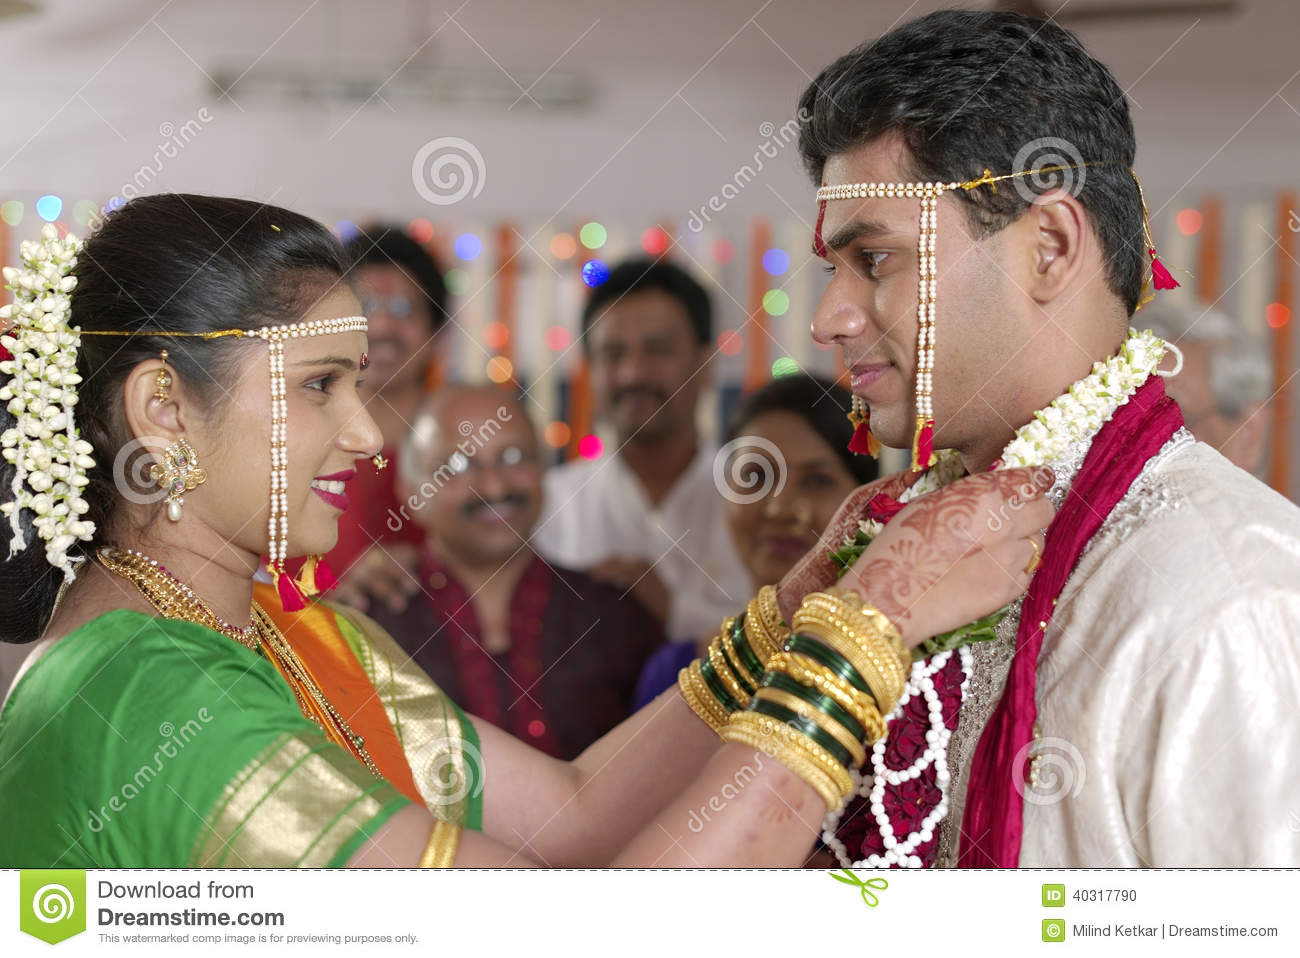 Indian Hindu Bride Looking At Groom And Exchanging Garland